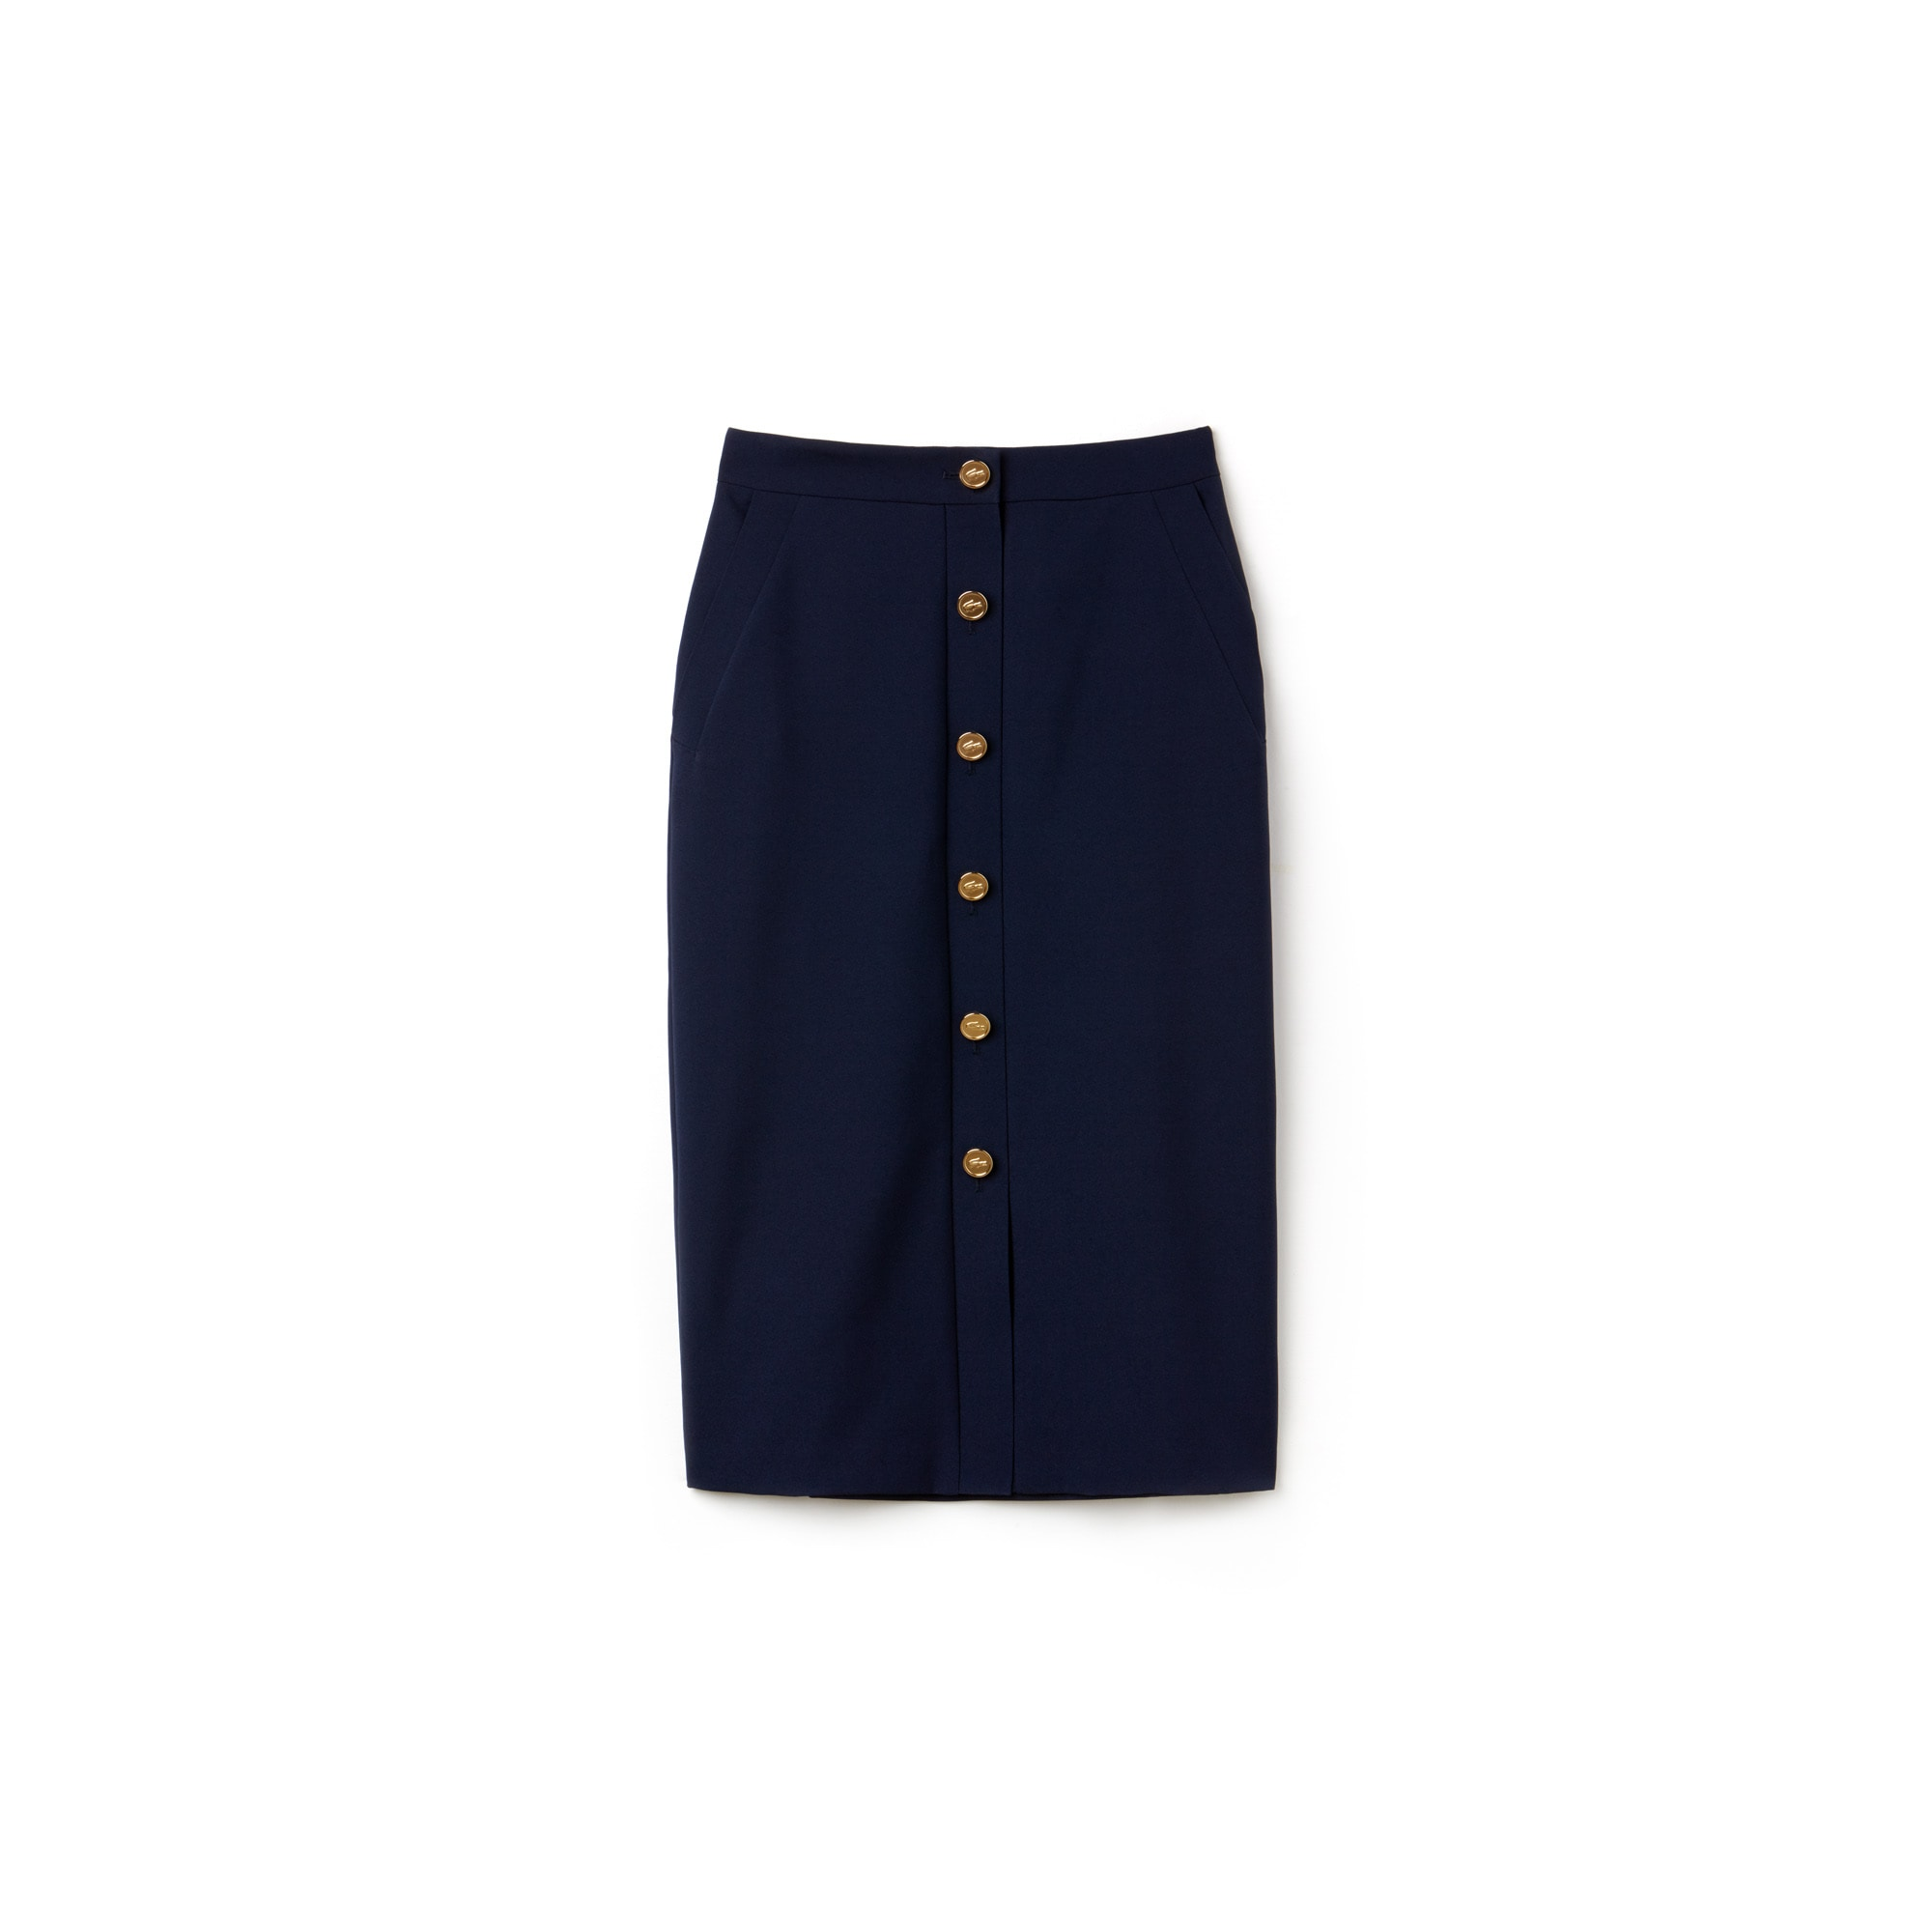 Women's Fashion Show High-Waisted Buttoned Skirt